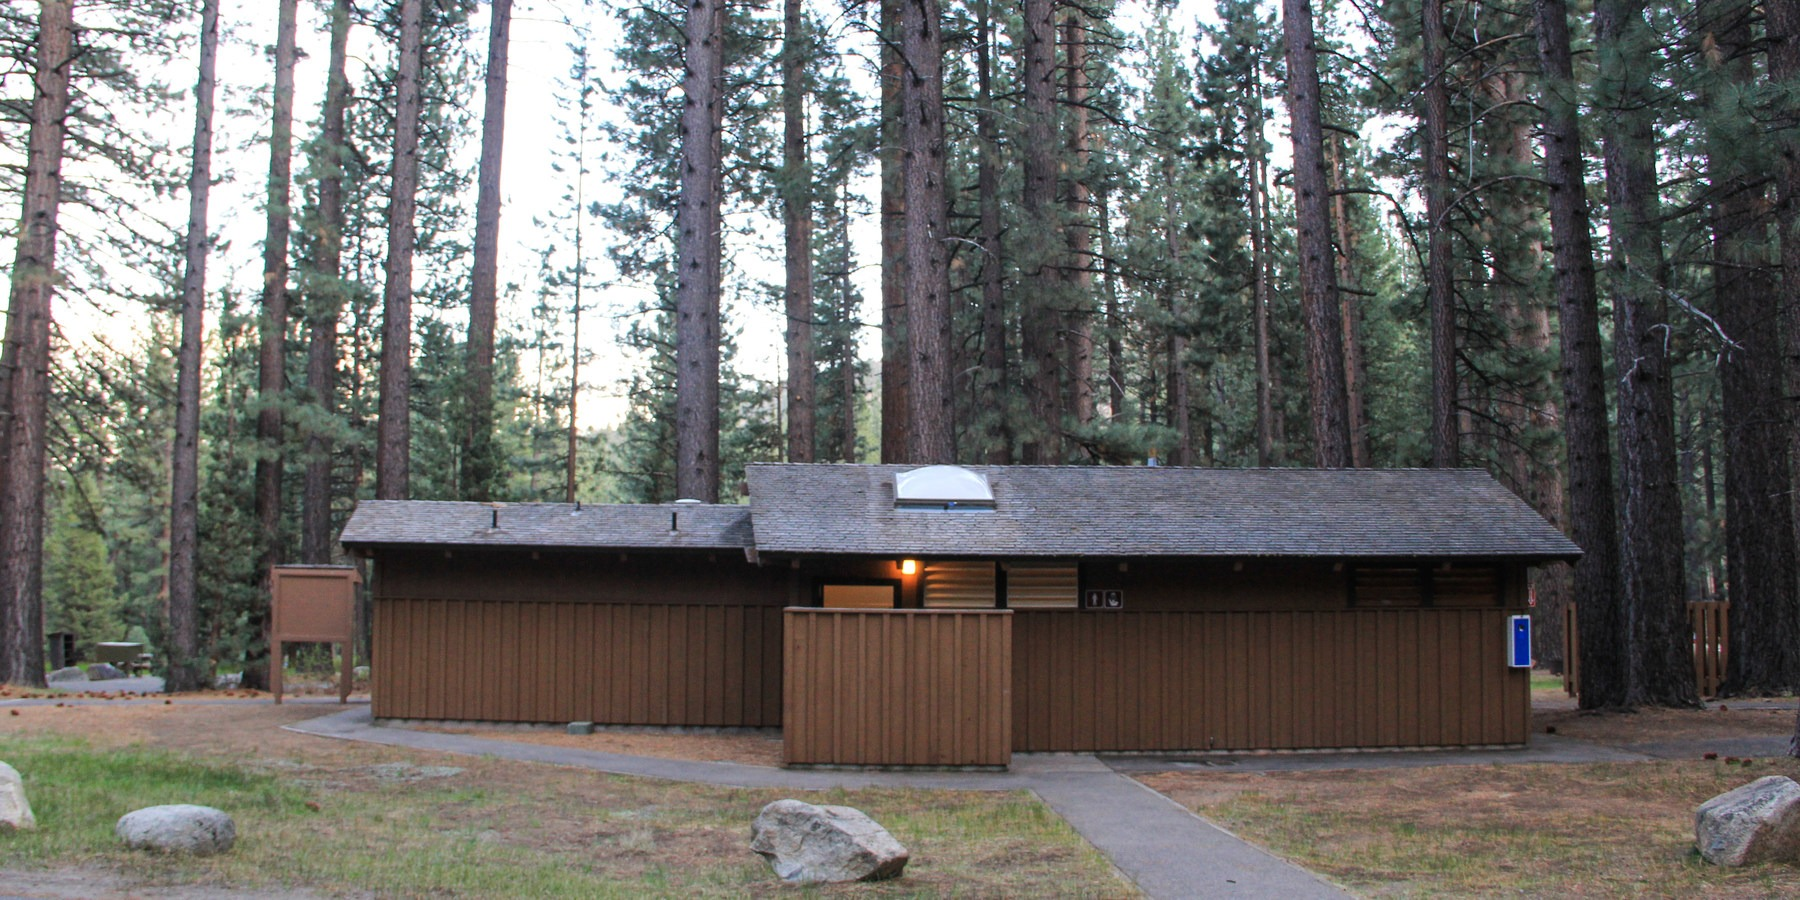 Grover hot springs state park campground outdoor project for Camping grounds with cabins